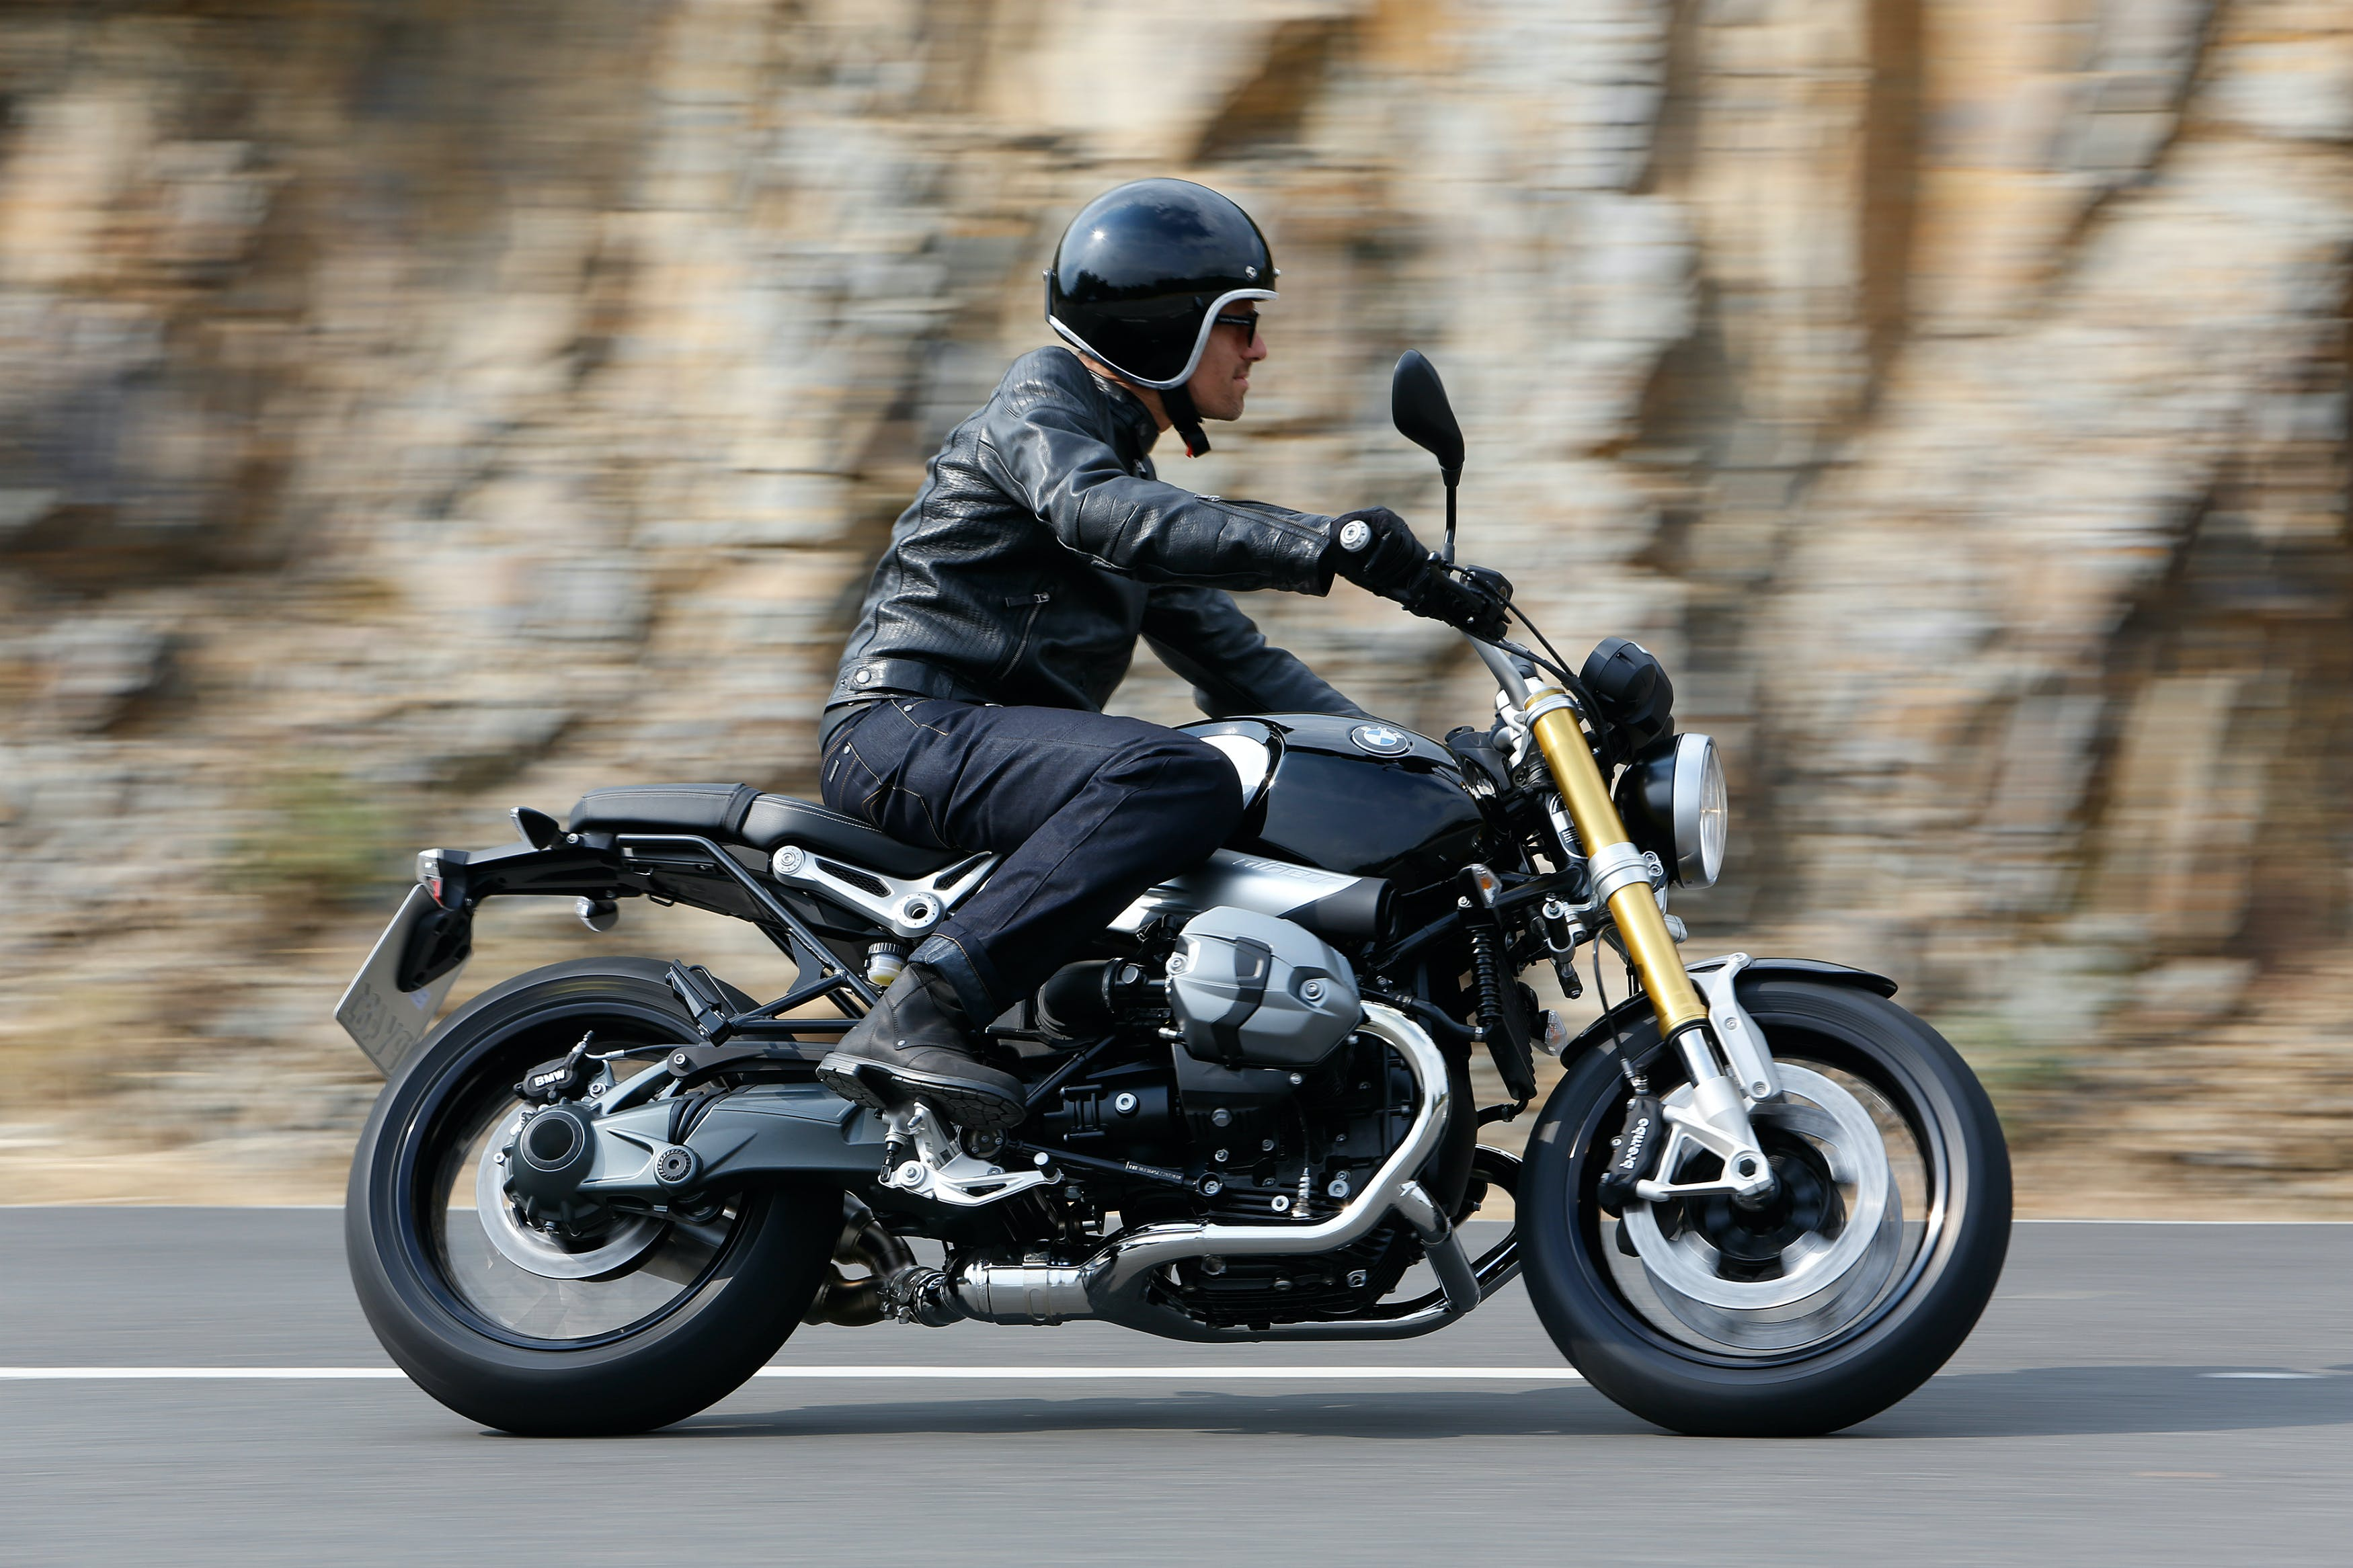 BMW R NINET SPEZIAL being ridden on the road